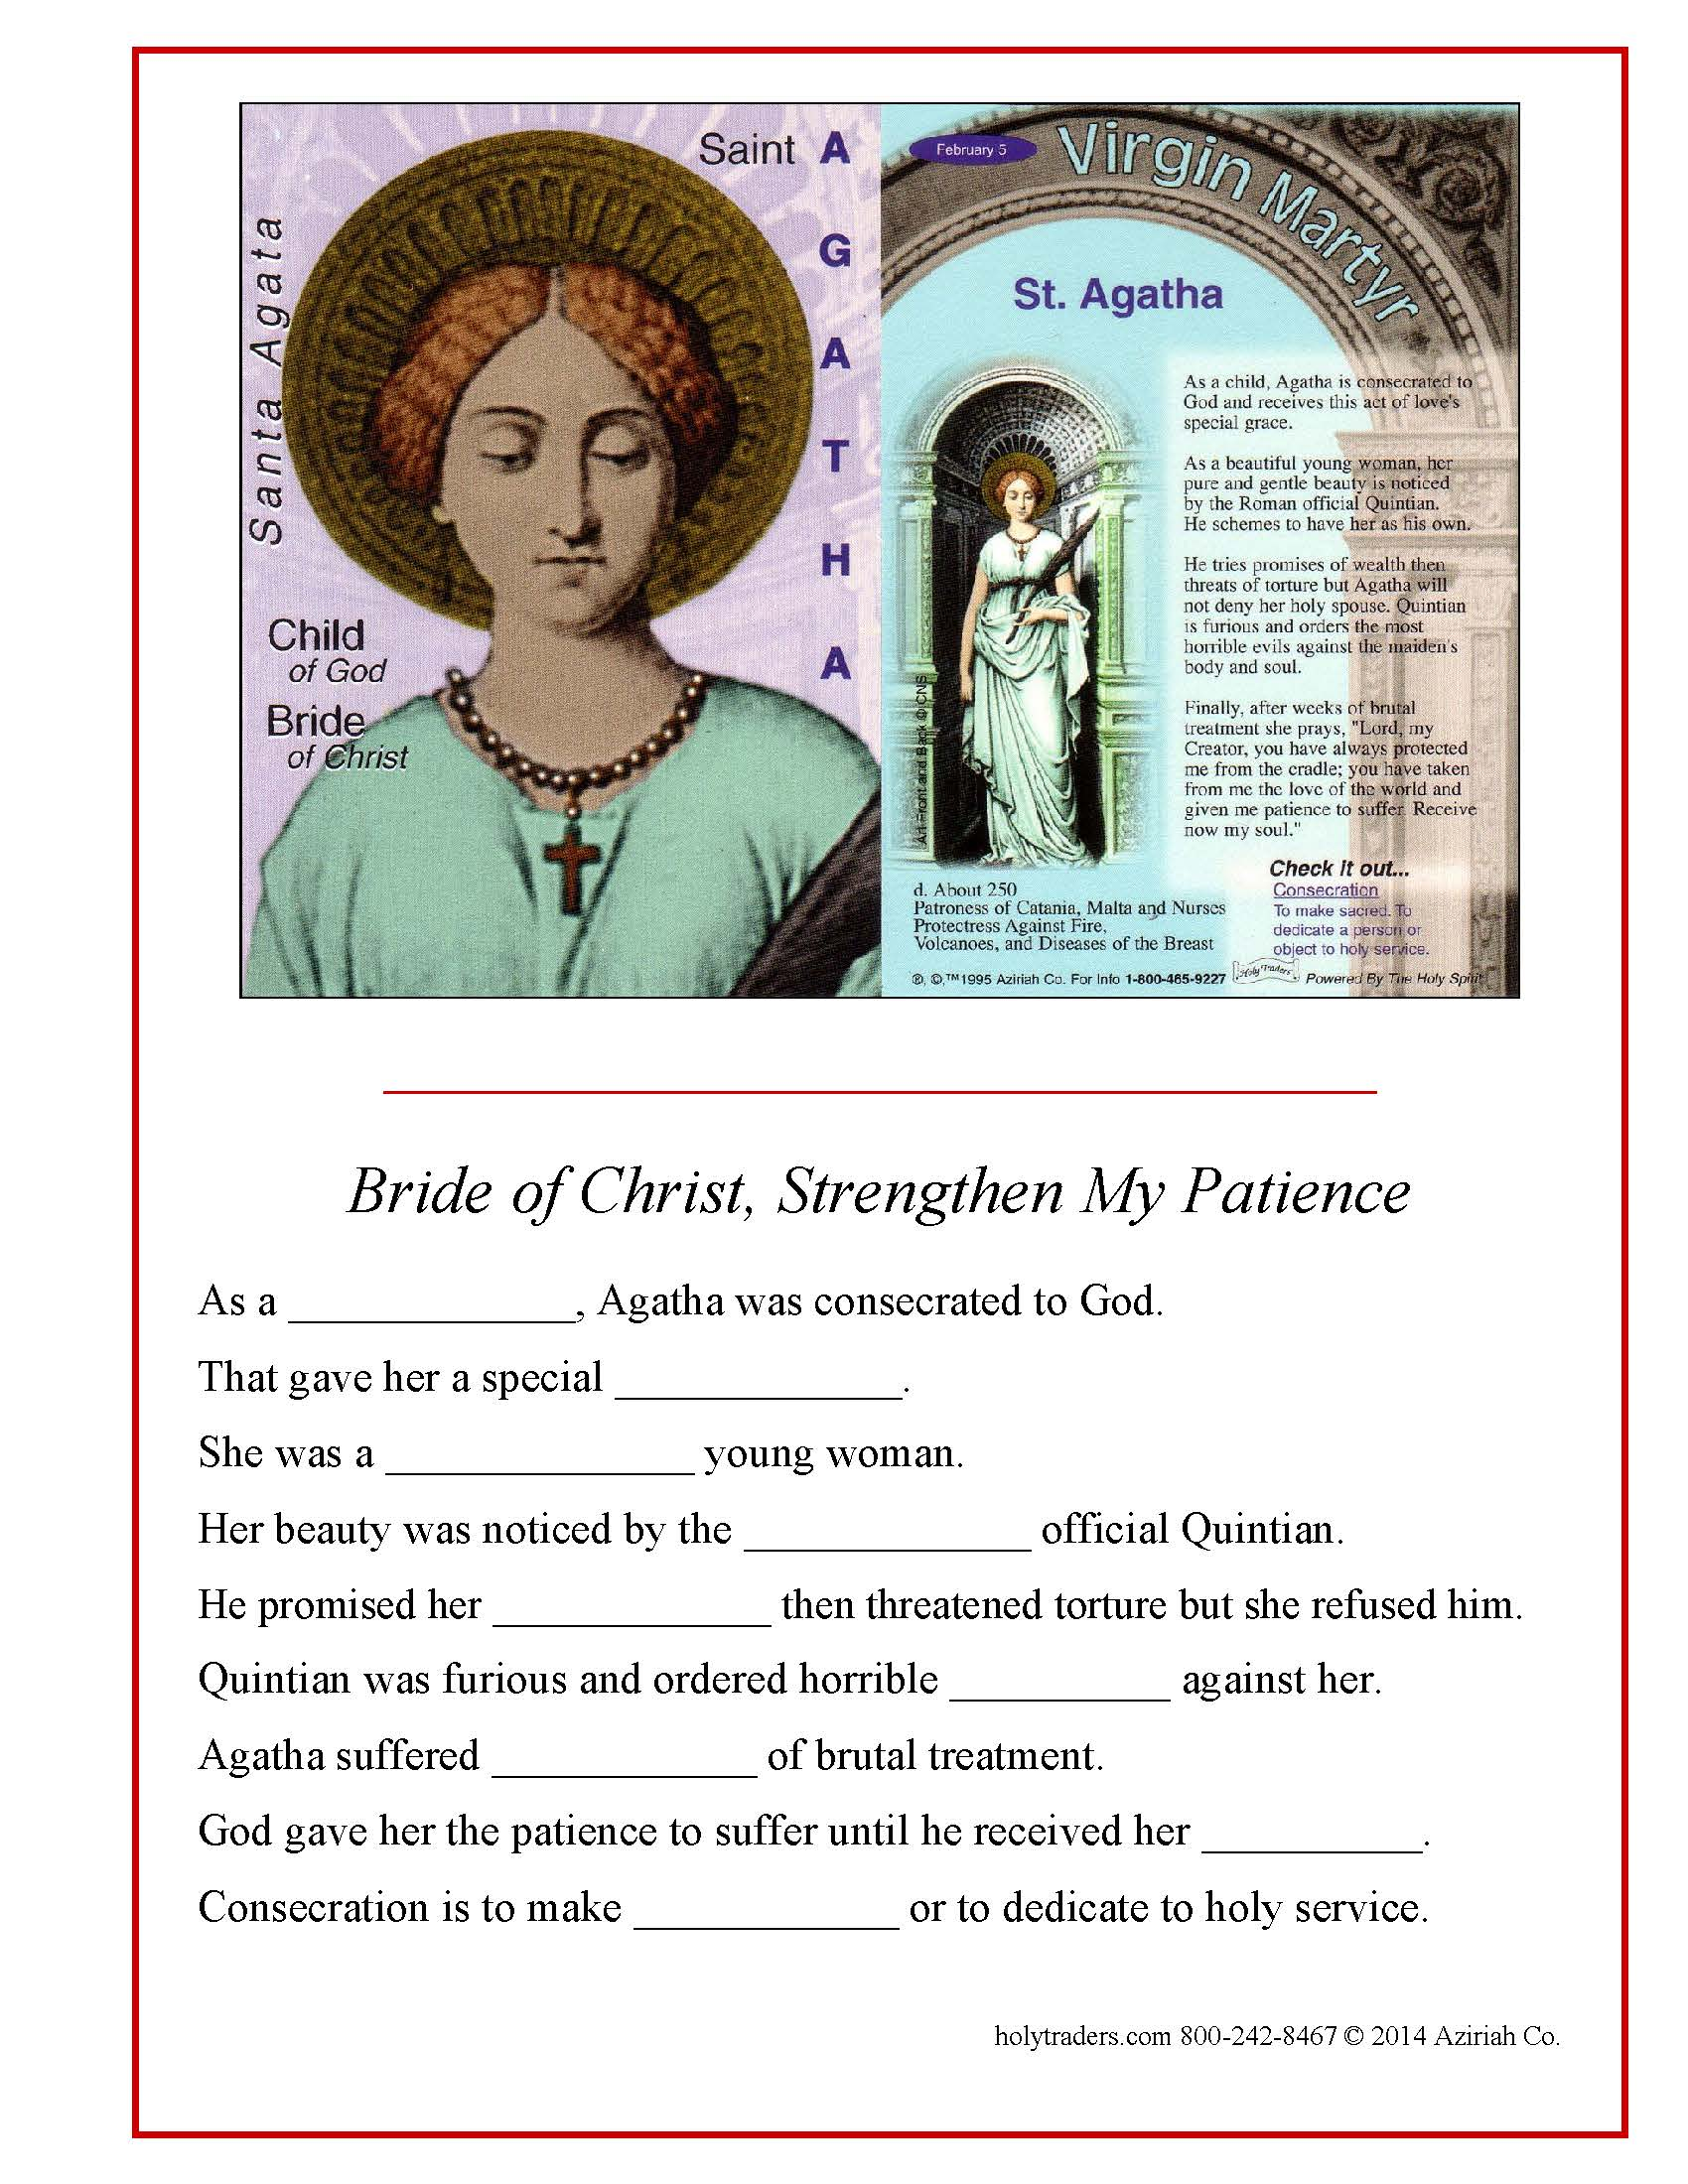 Preview Holy Traders Set 2 Activity Pages